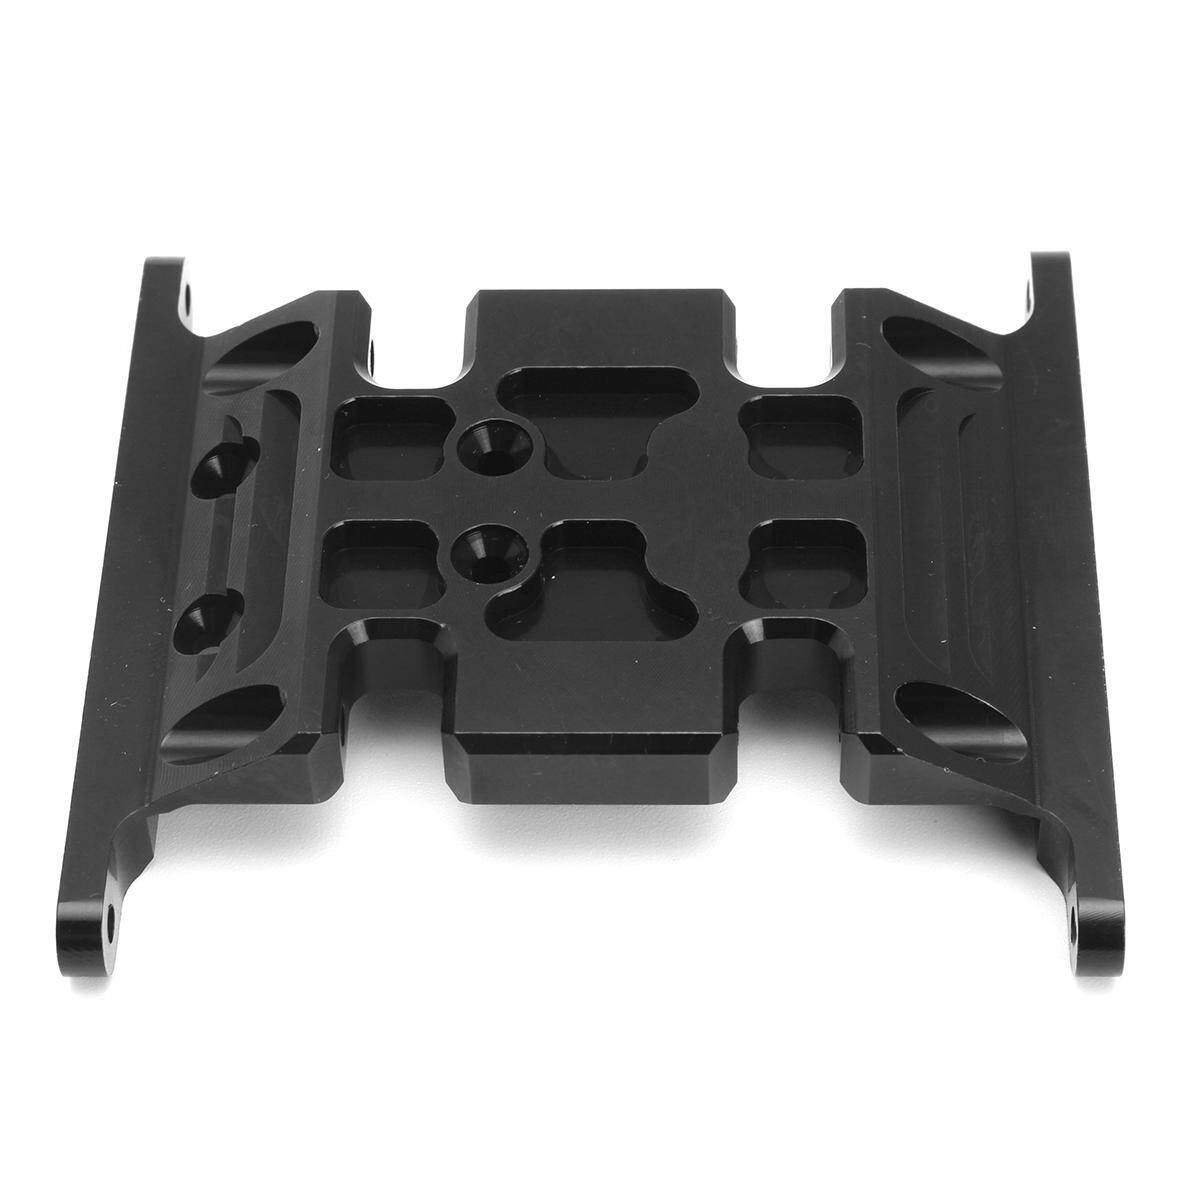 1/10 Aluminum Black Center Skid Plate Black Fit For Axial SCX10 RC Cars Crawler